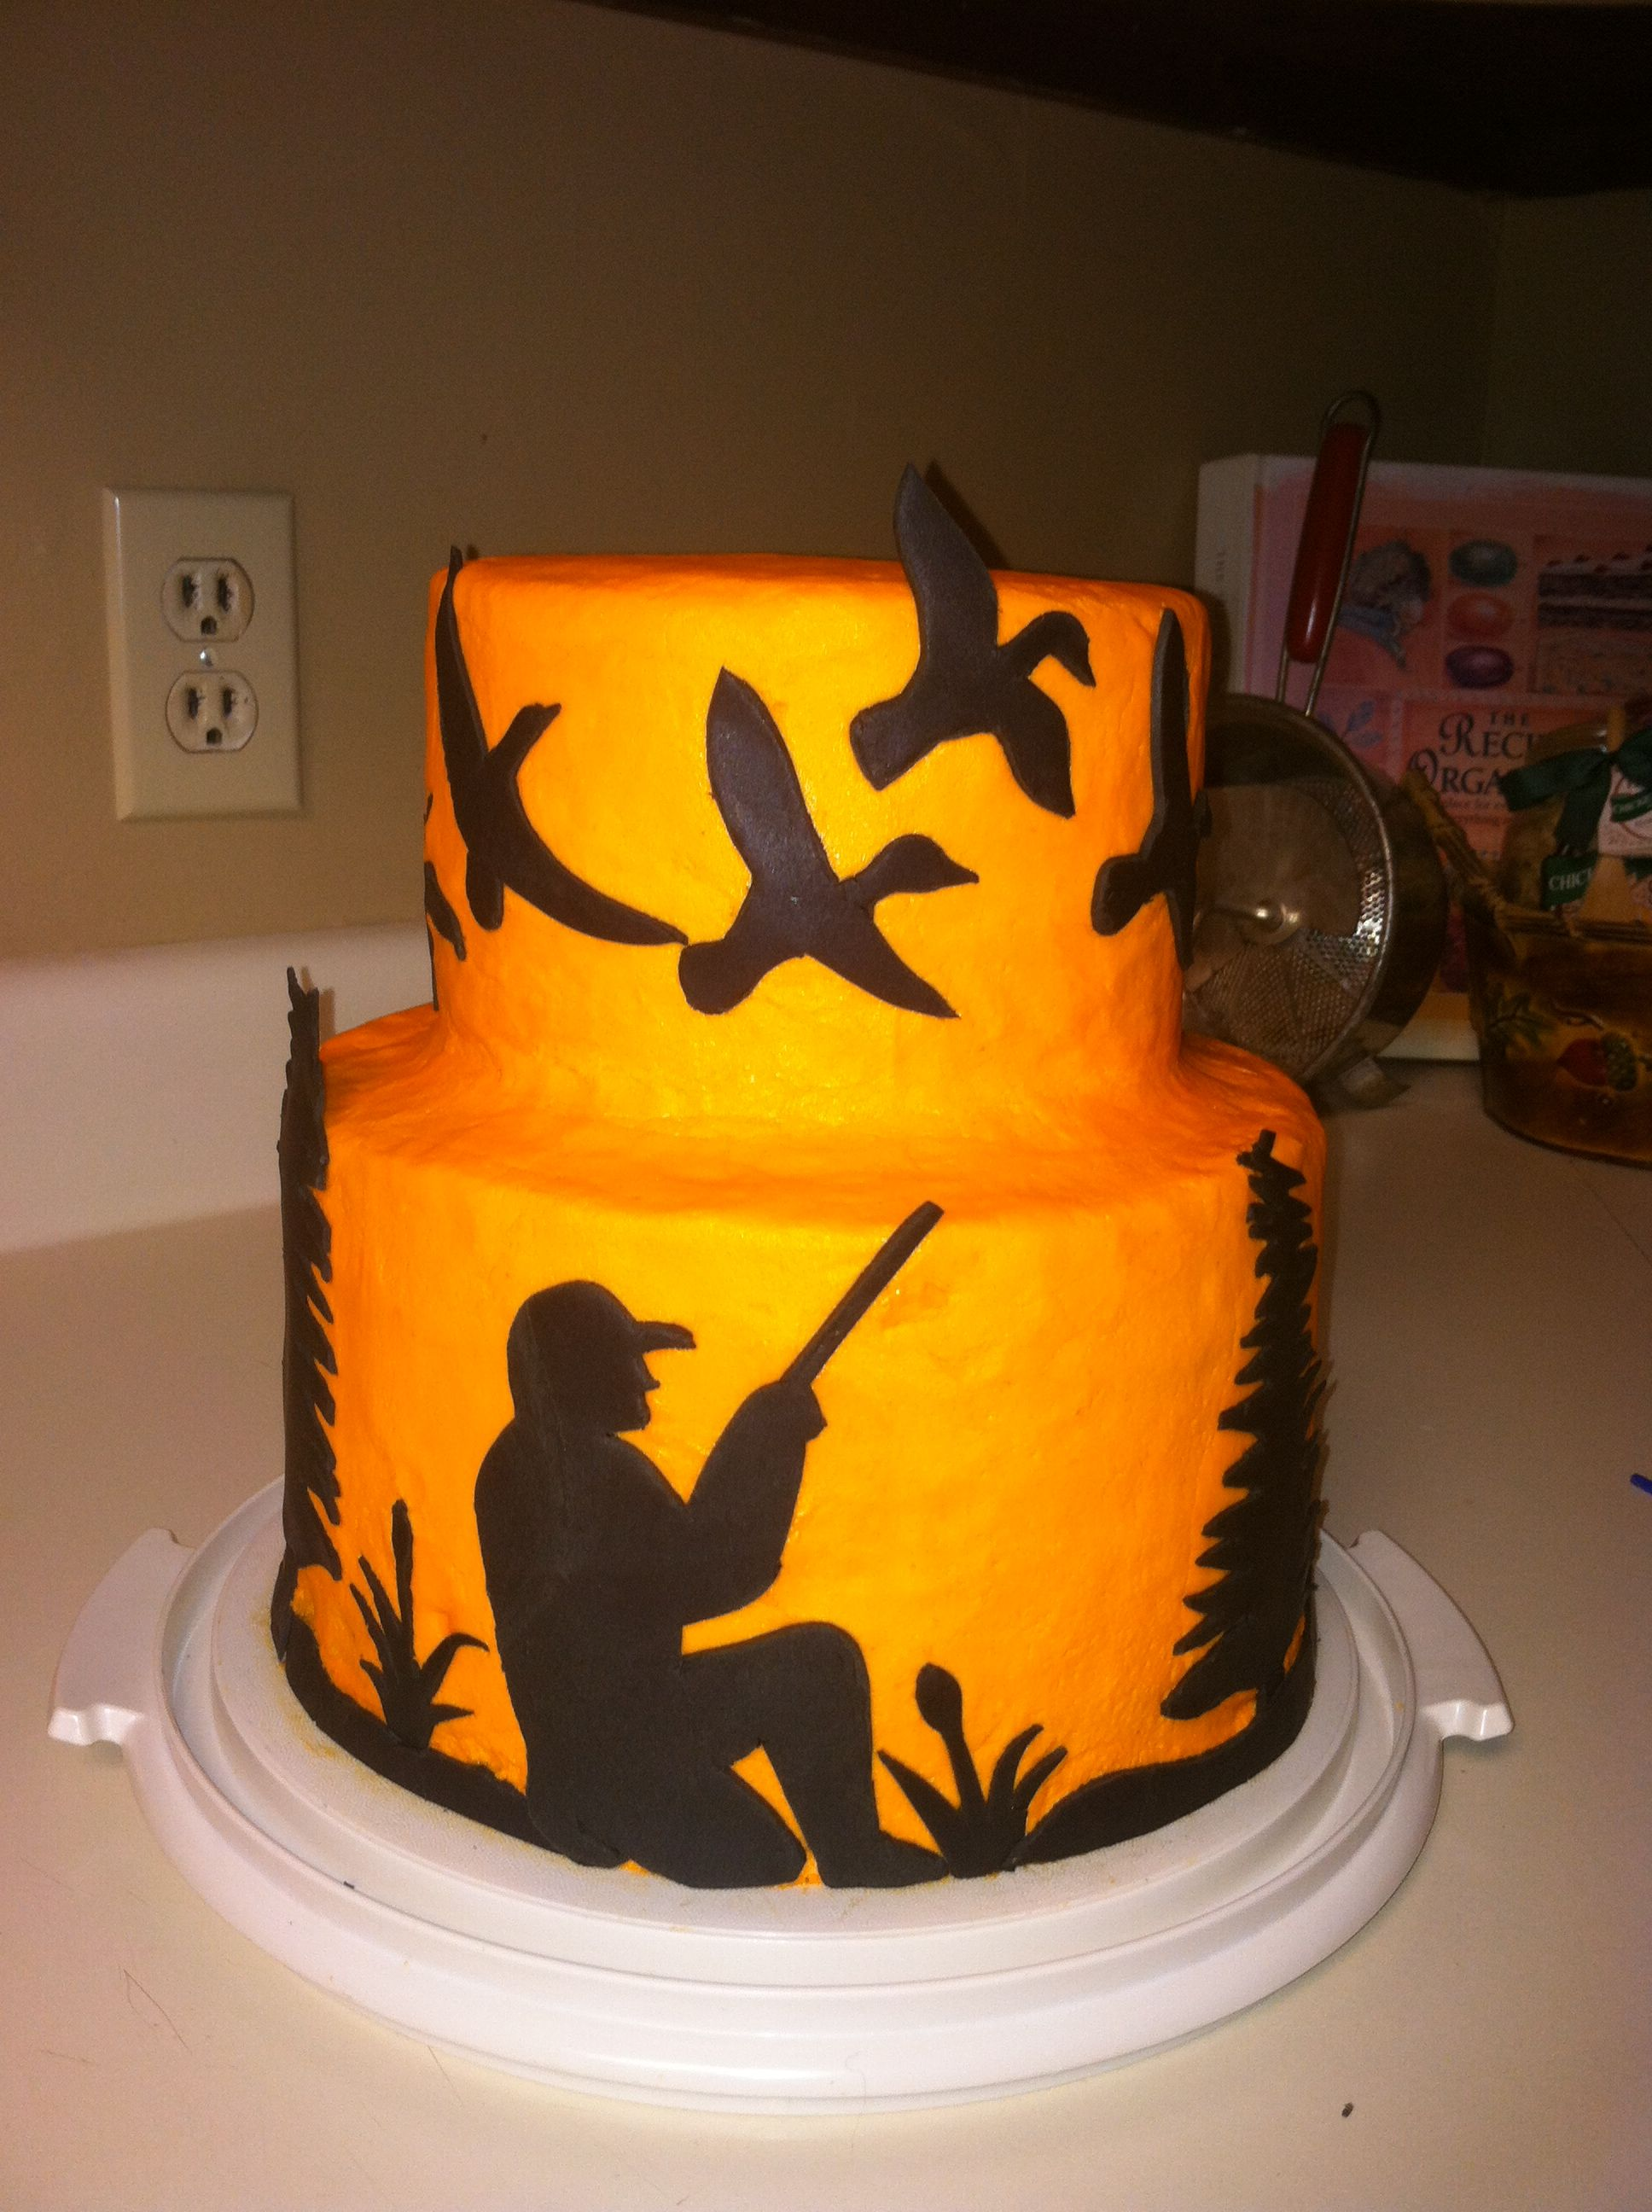 Duck Hunting Cake Decorations : Duck hunting cake My cakes Pinterest Duck hunting ...